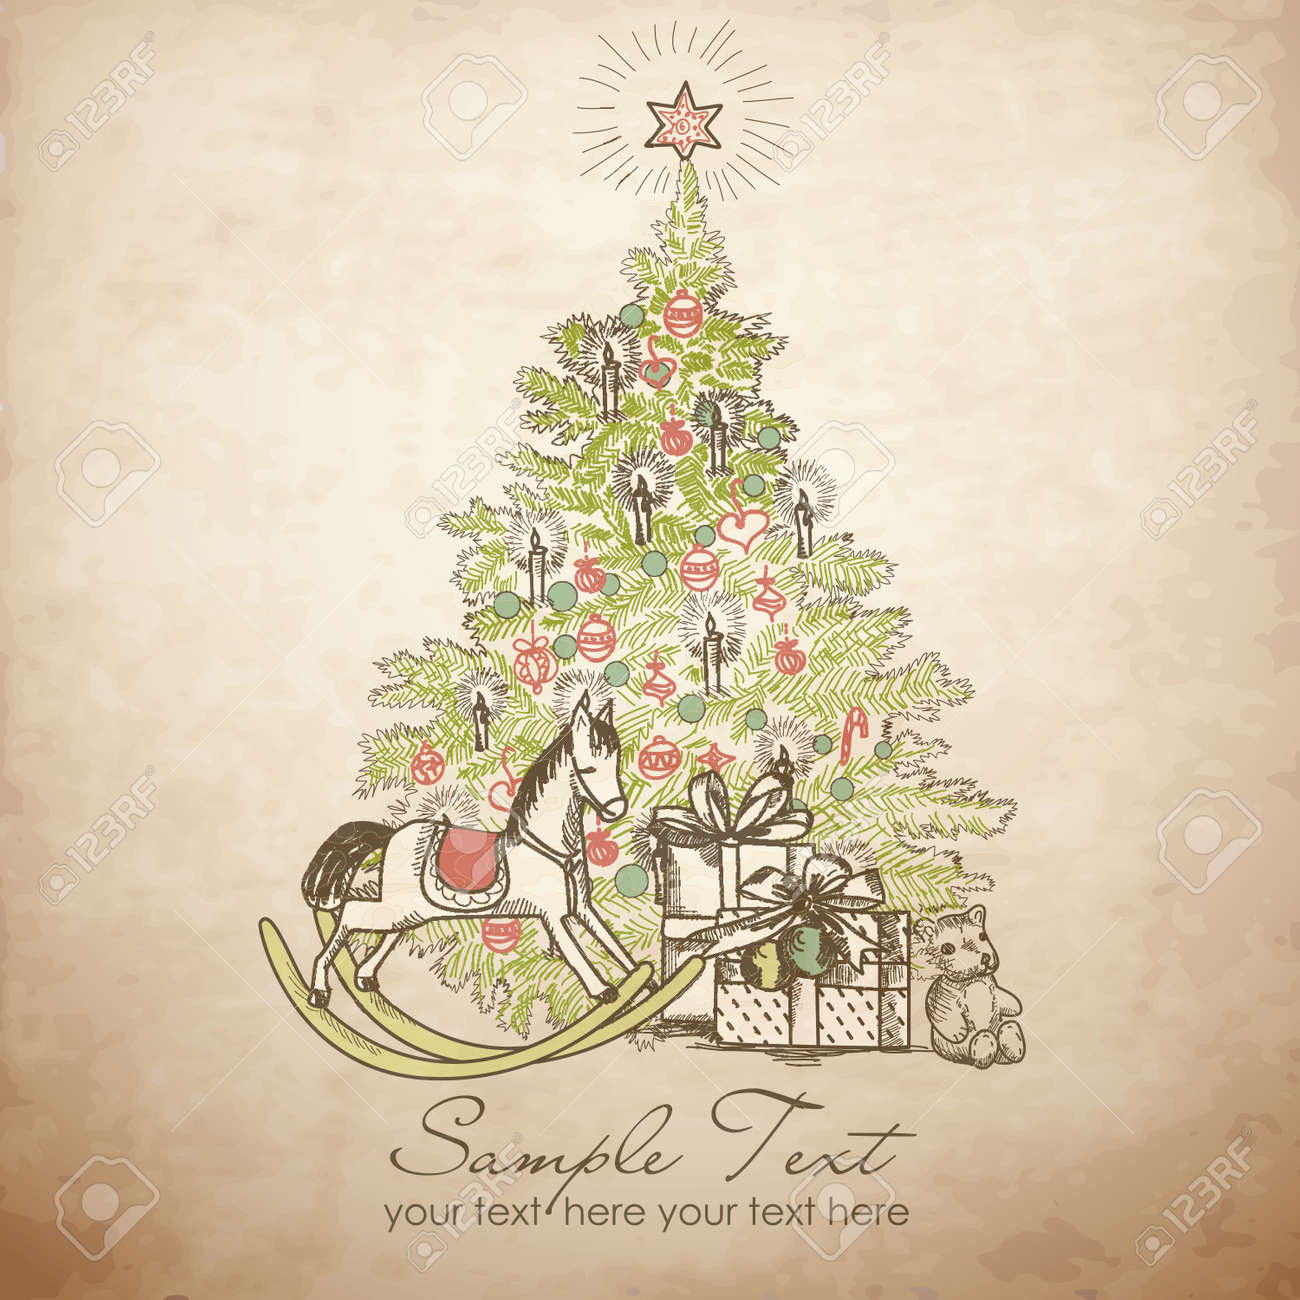 Vintage Christmas Card Beautiful Christmas Tree Illustration Royalty Free Cliparts Vectors And Stock Illustration Image 11158920